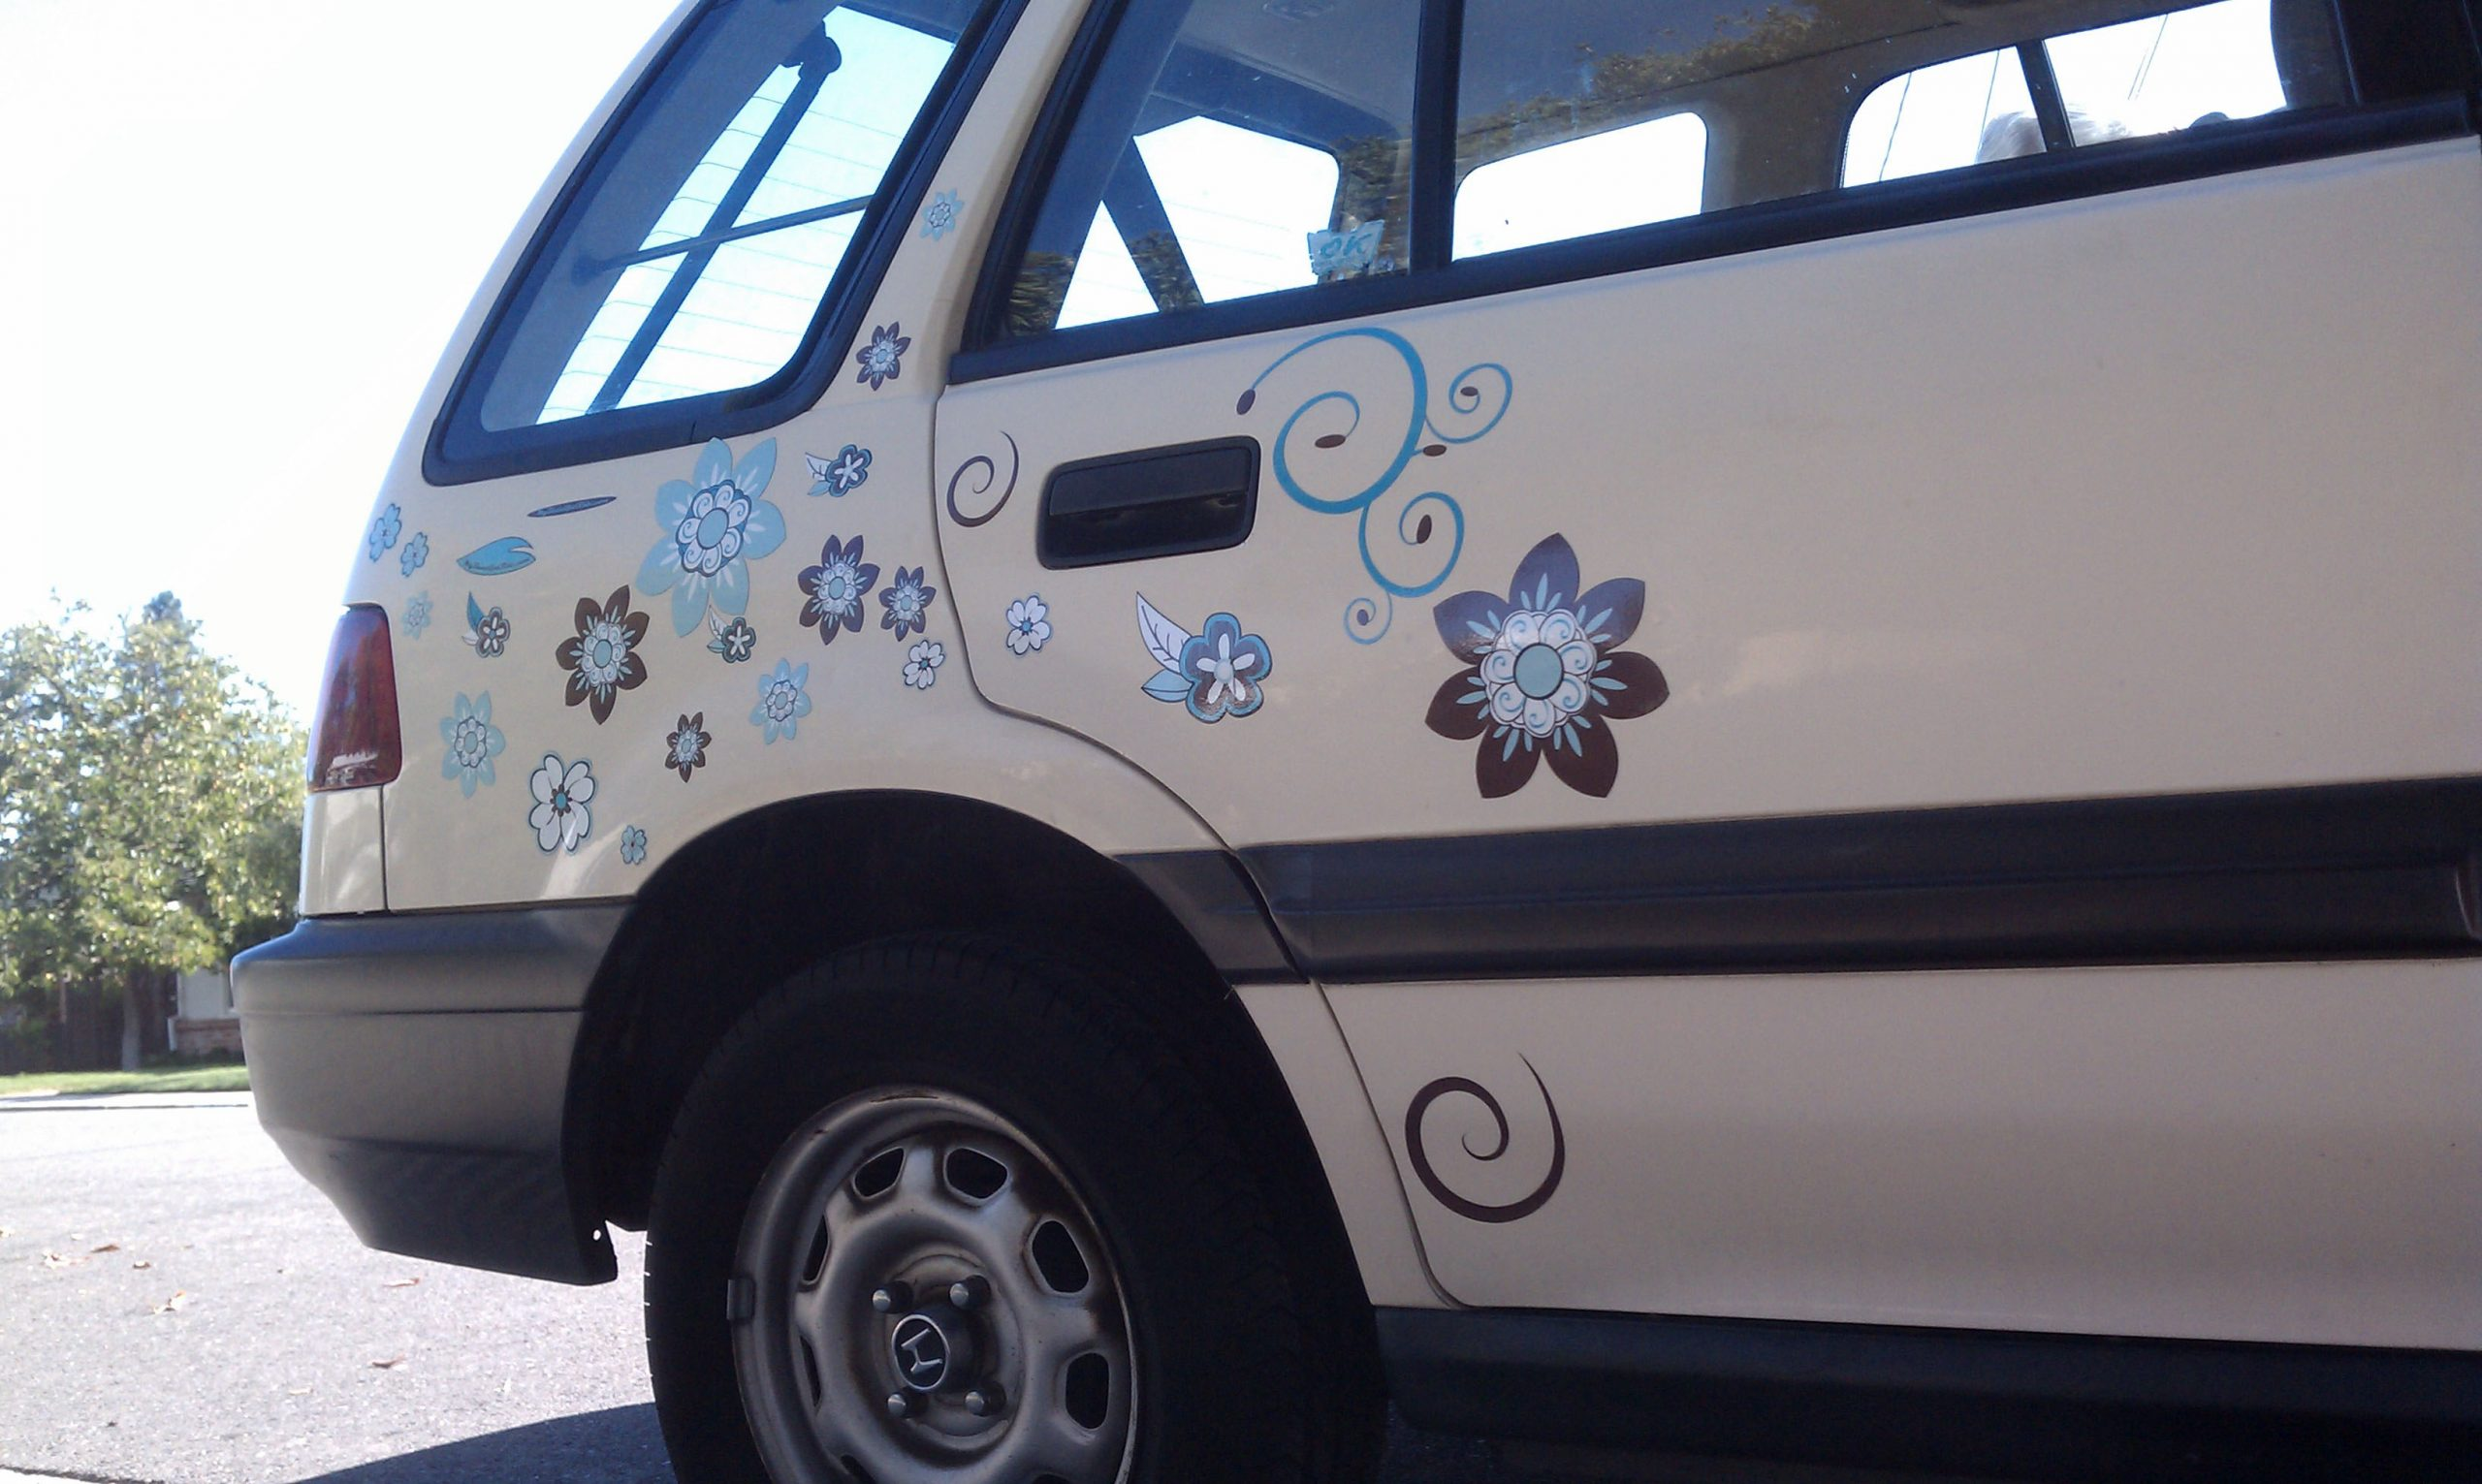 Beige Honda Civic station wagon rear quater panel with pretty brown and blue flower decals